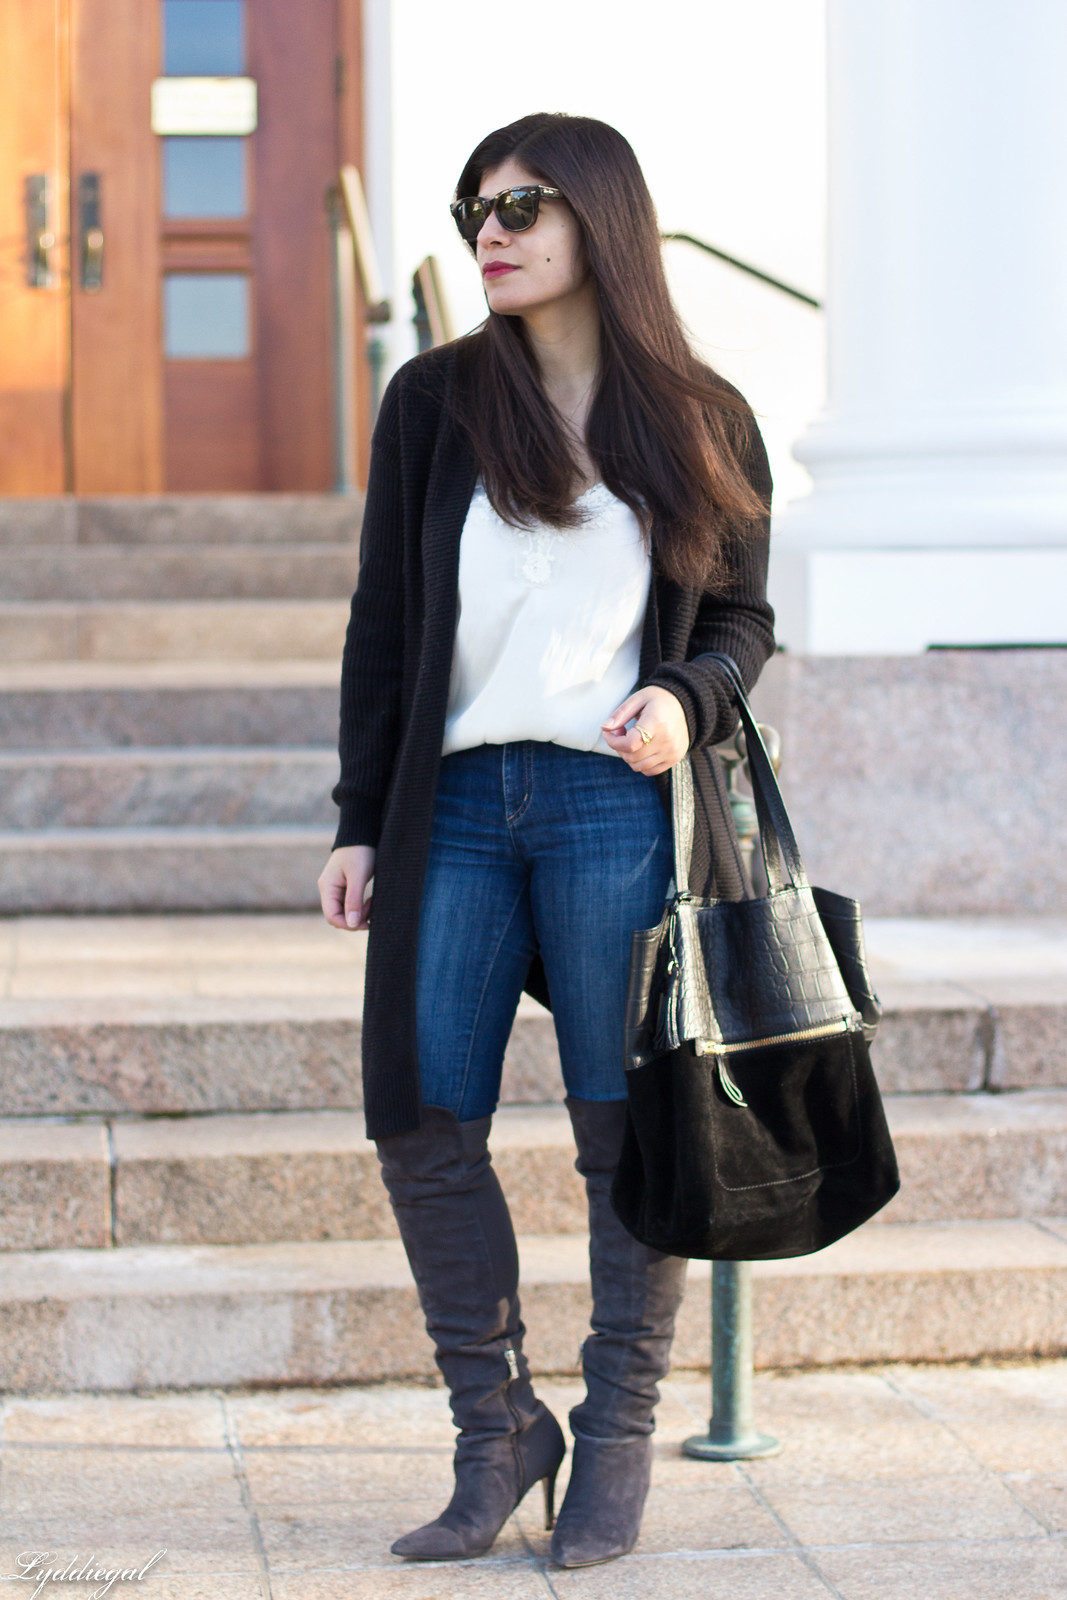 CT Fashion blogger wearing a lace cami, black long cardigan, over the knee boots, jeans.jpg